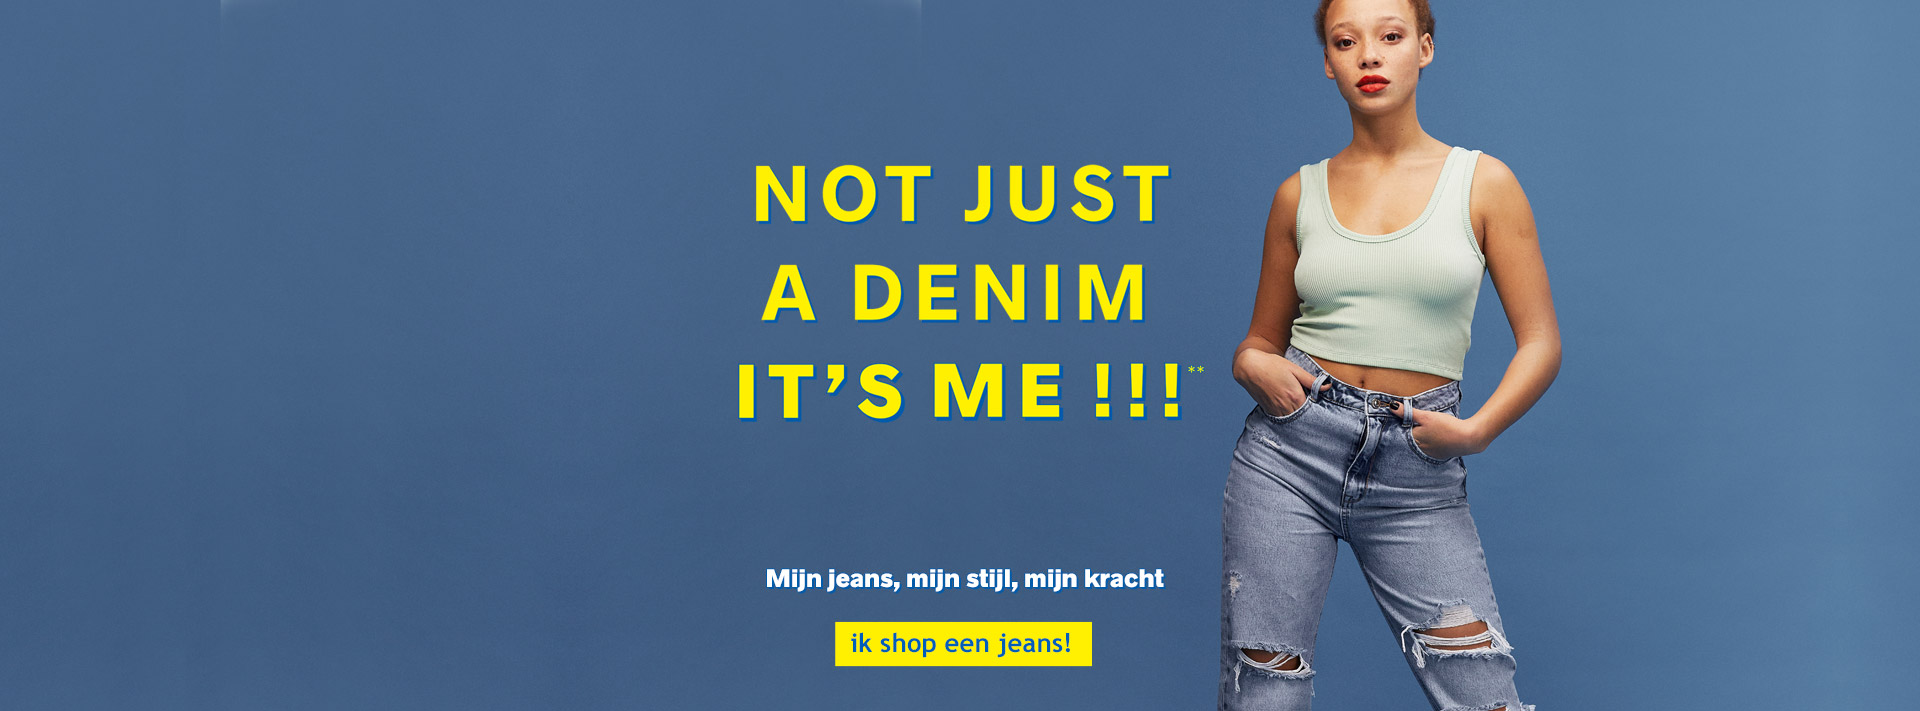 Not just a denim it's me !!!**